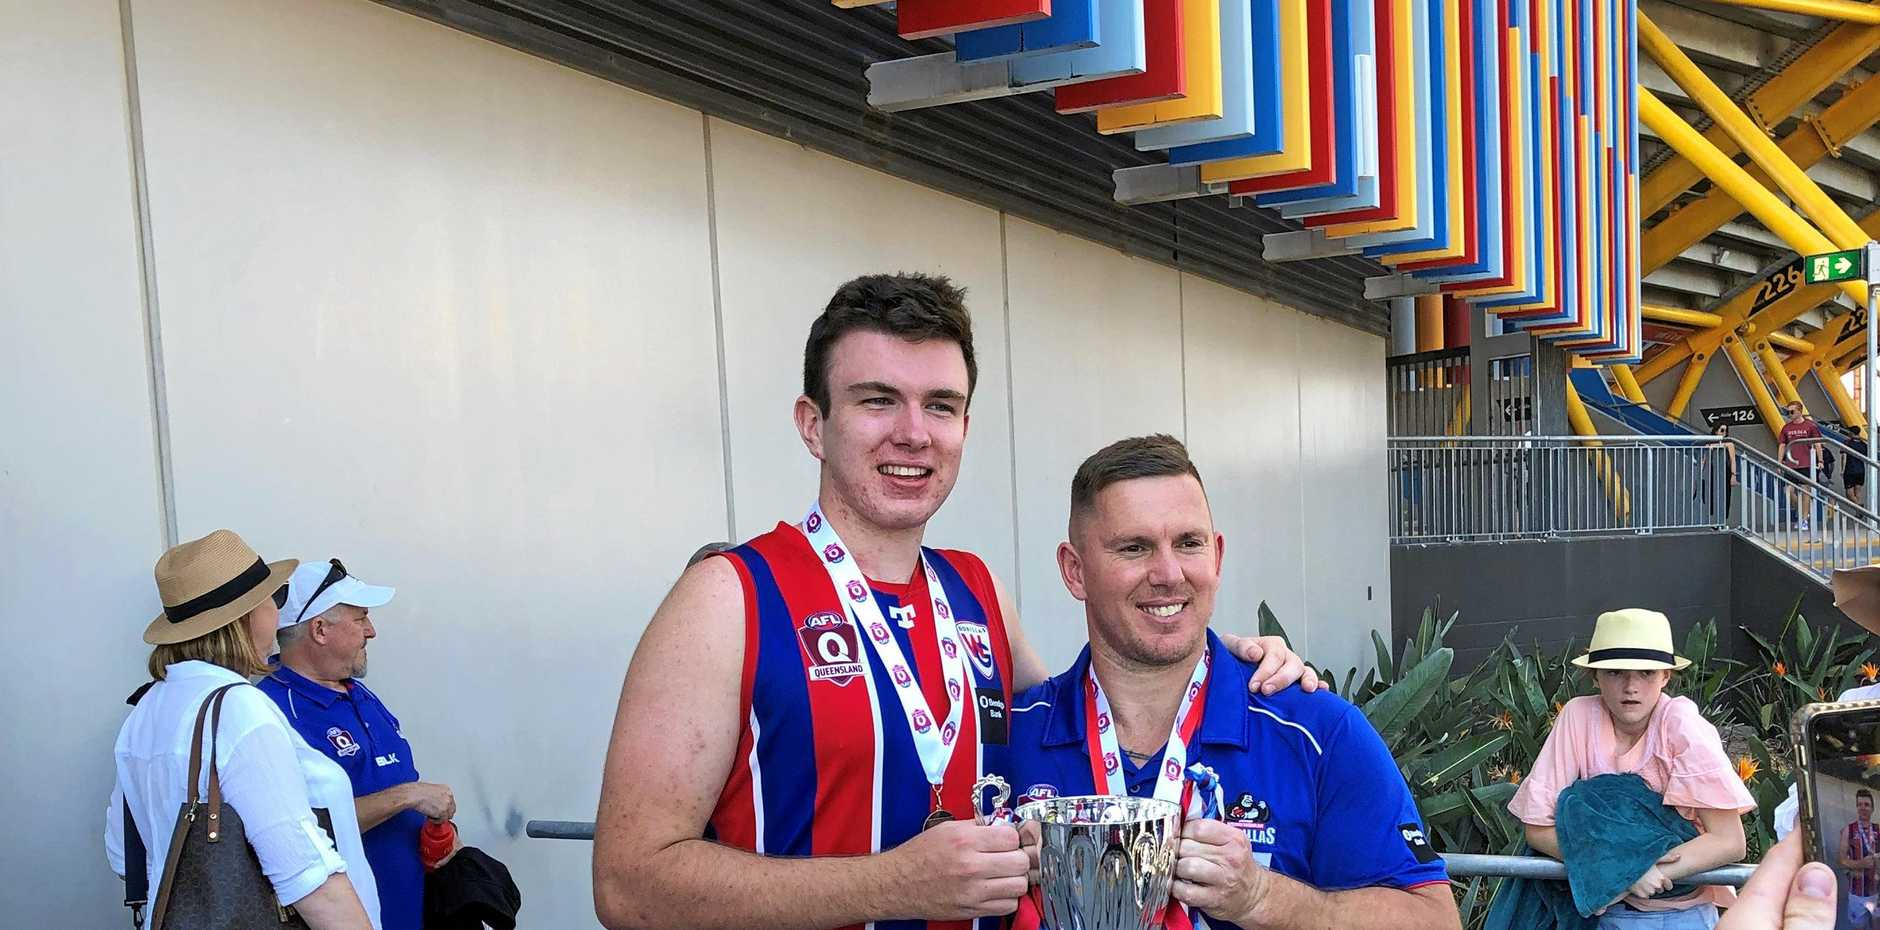 VICTORY: Winning QAFL colts player and former Scots PGC student Harry Keenan with his coach and former AFL player Brent Maloney after a premiership win.